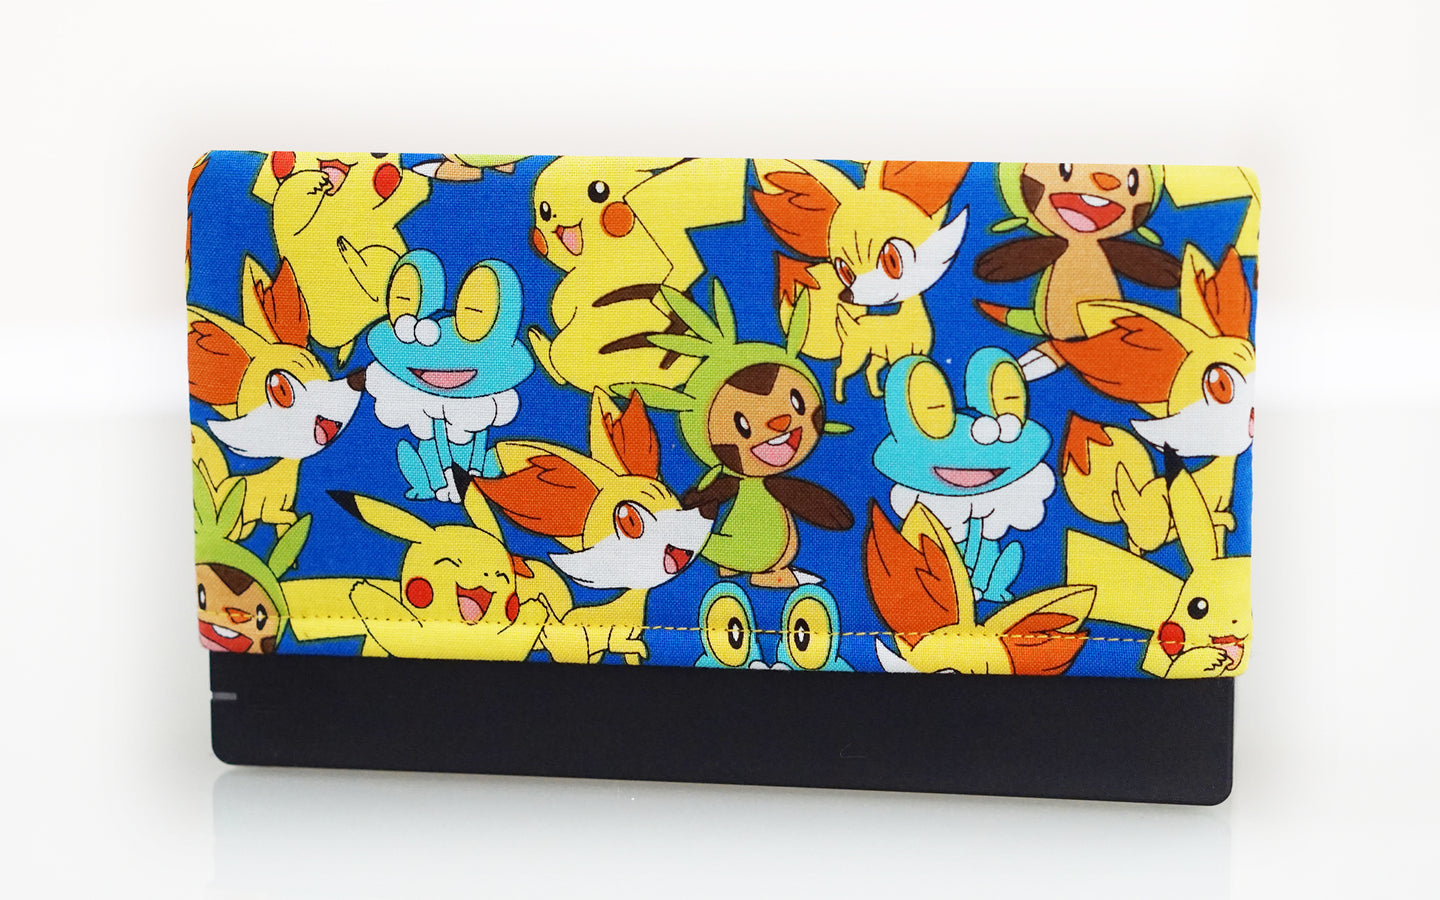 Padded Dock Cover Made For Nintendo Switch